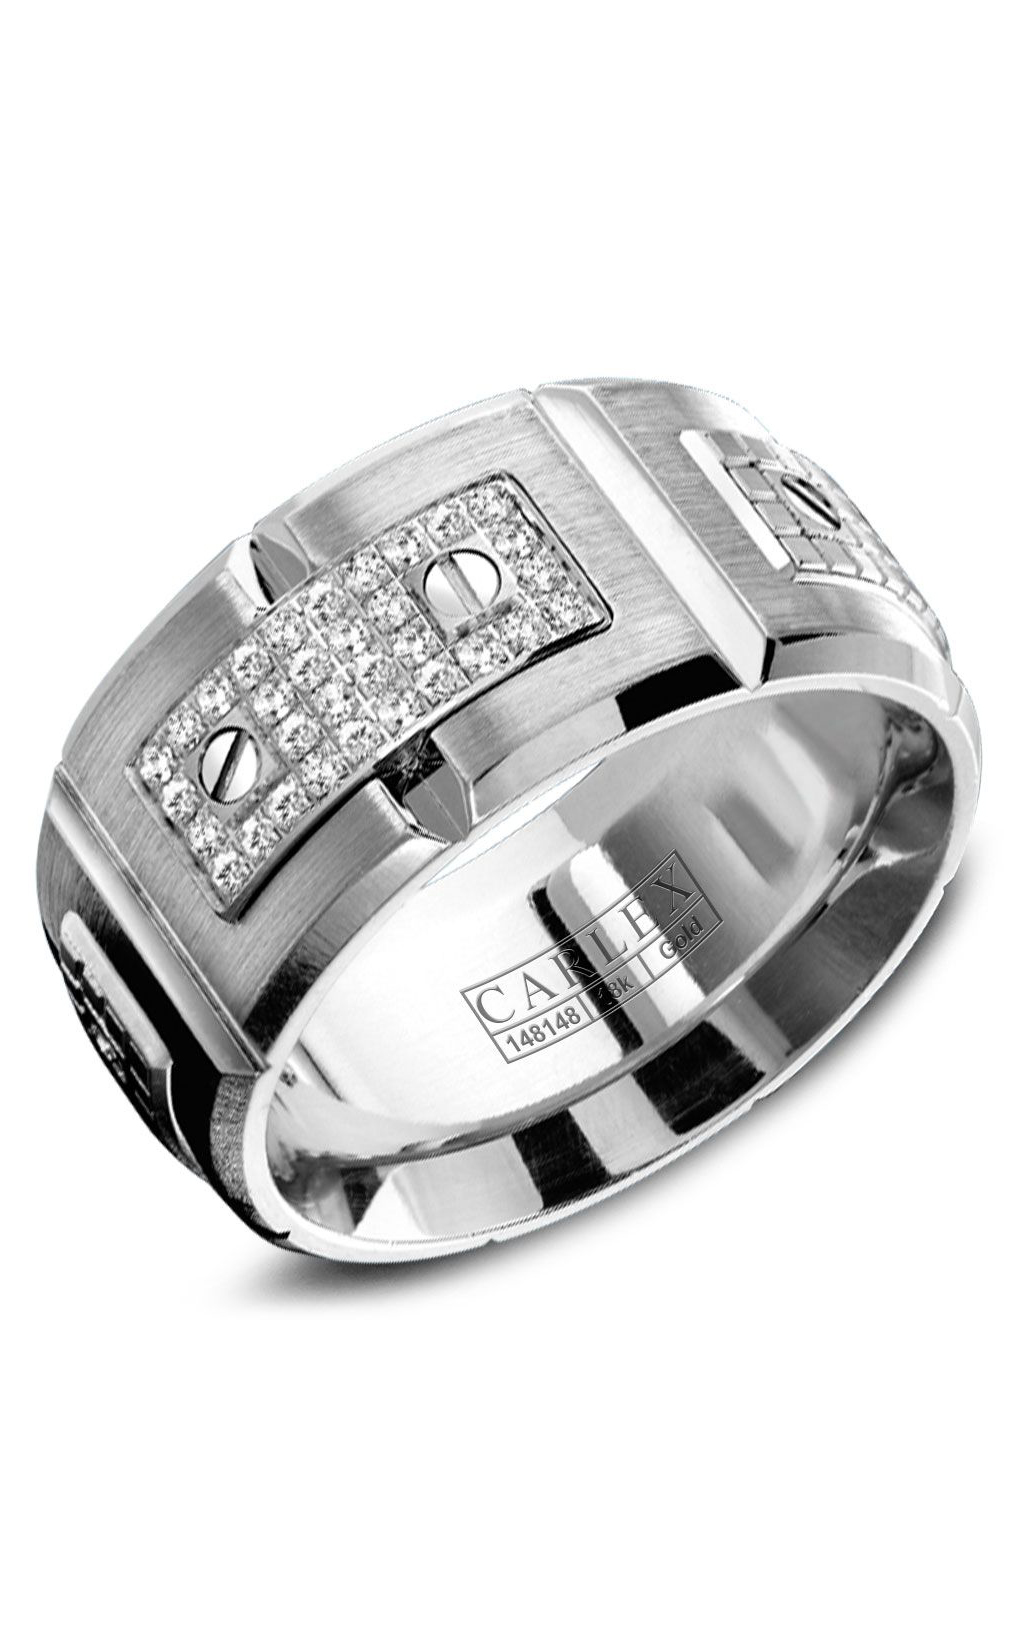 Carlex G2 Men's Wedding Band WB-9897WW product image